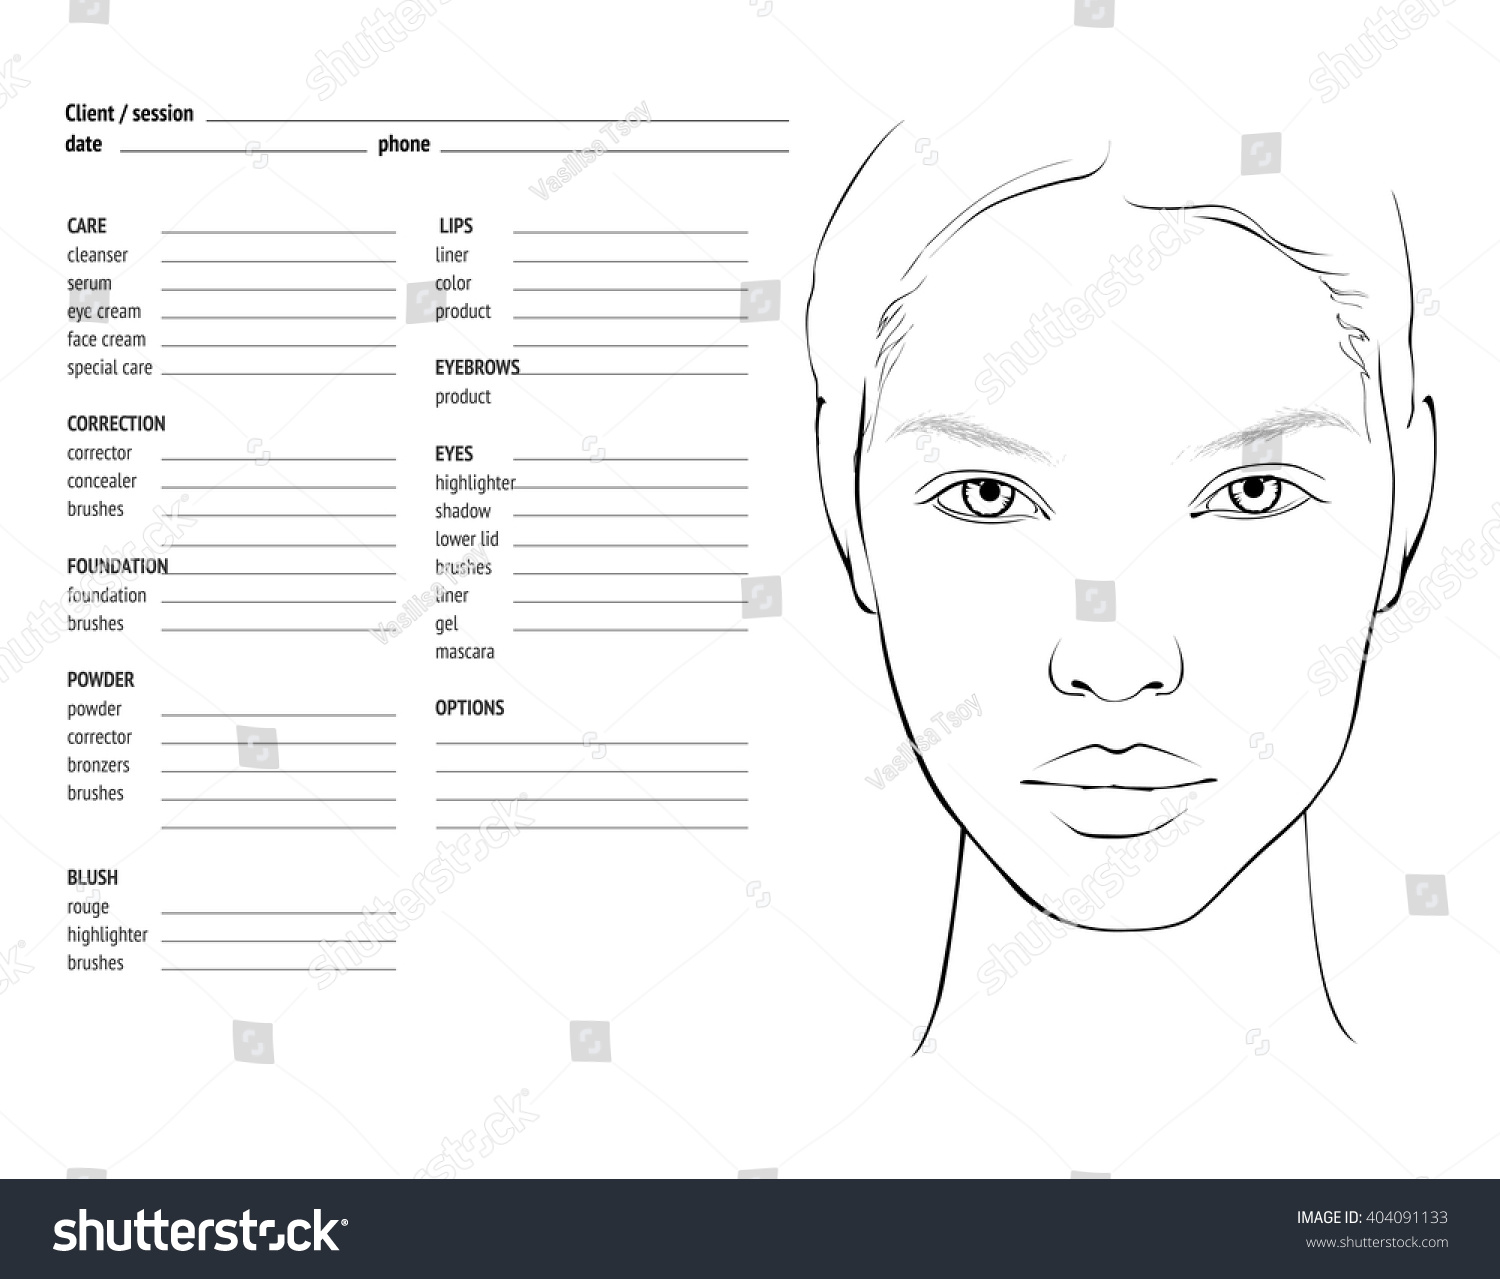 blank face diagram botox car work light wiring chart makeup artist template stock vector